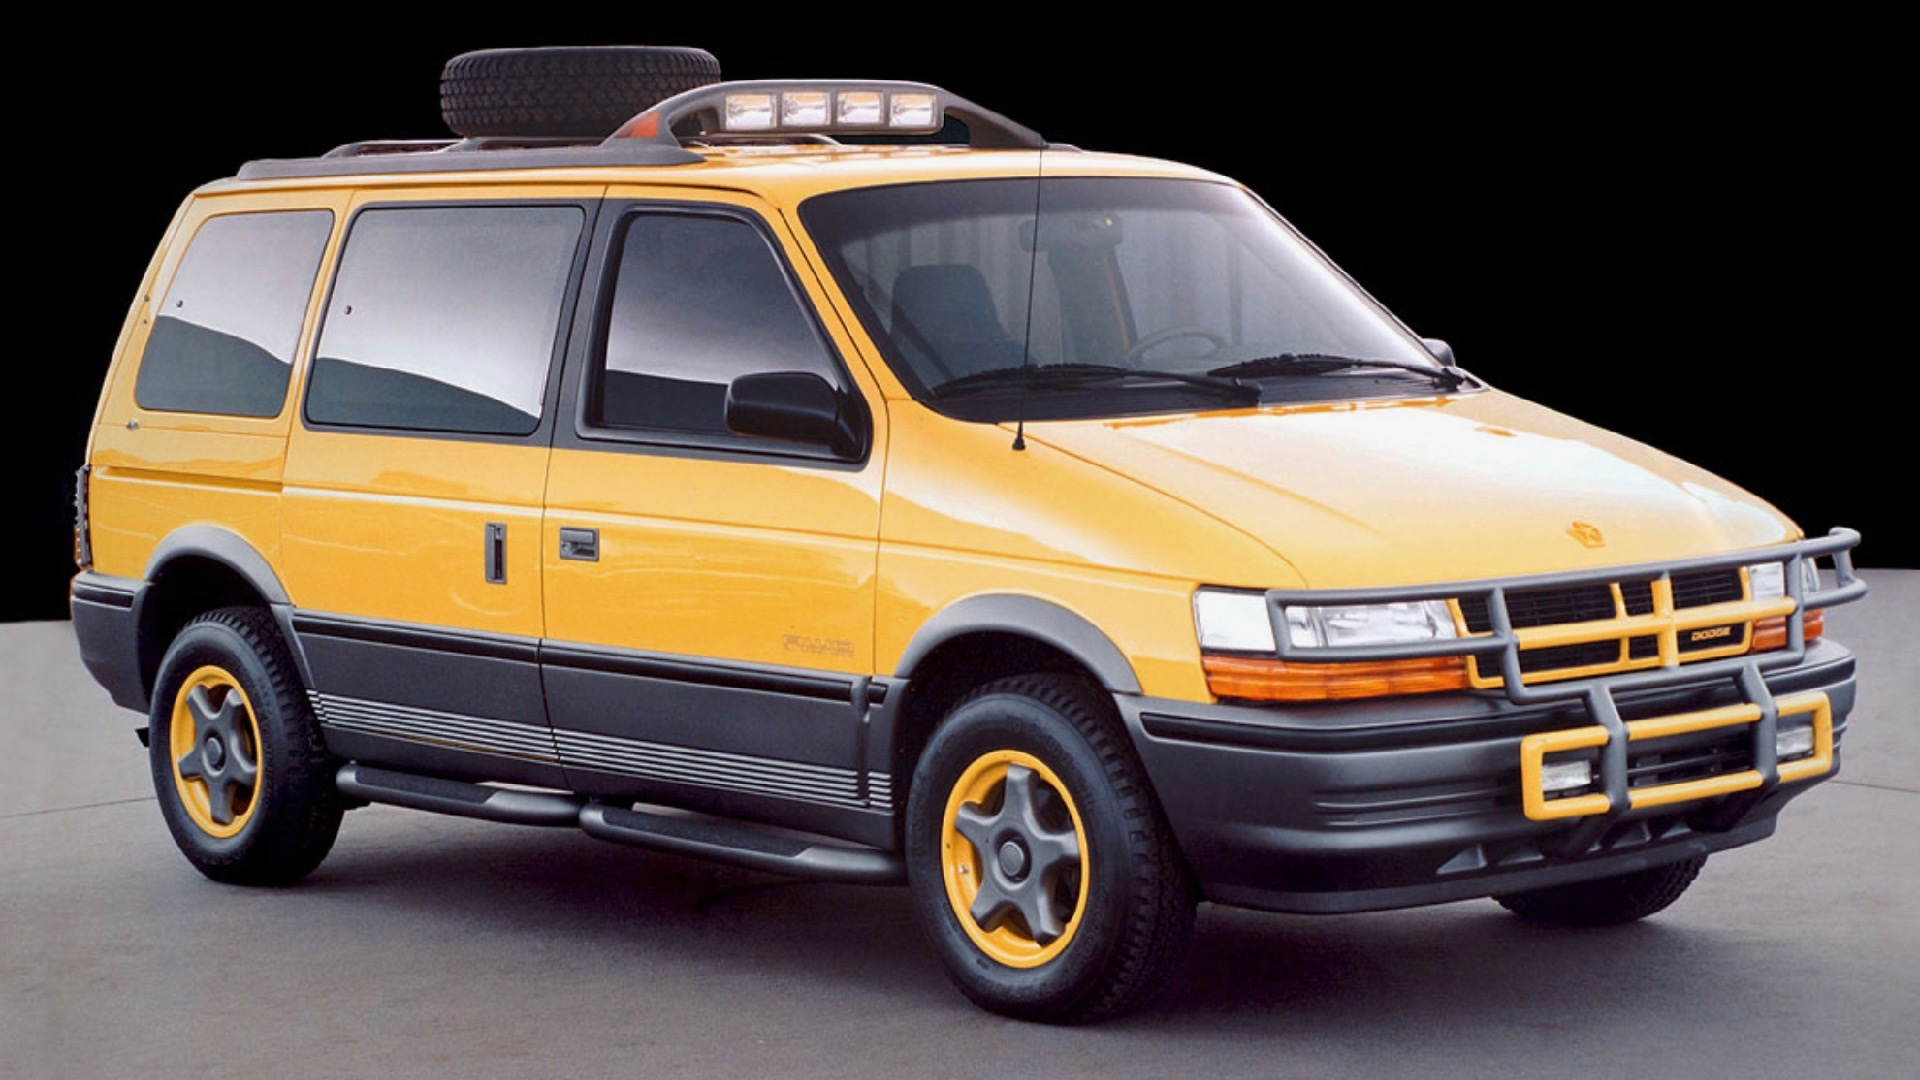 Dodge almost made an off-road version of the Caravan